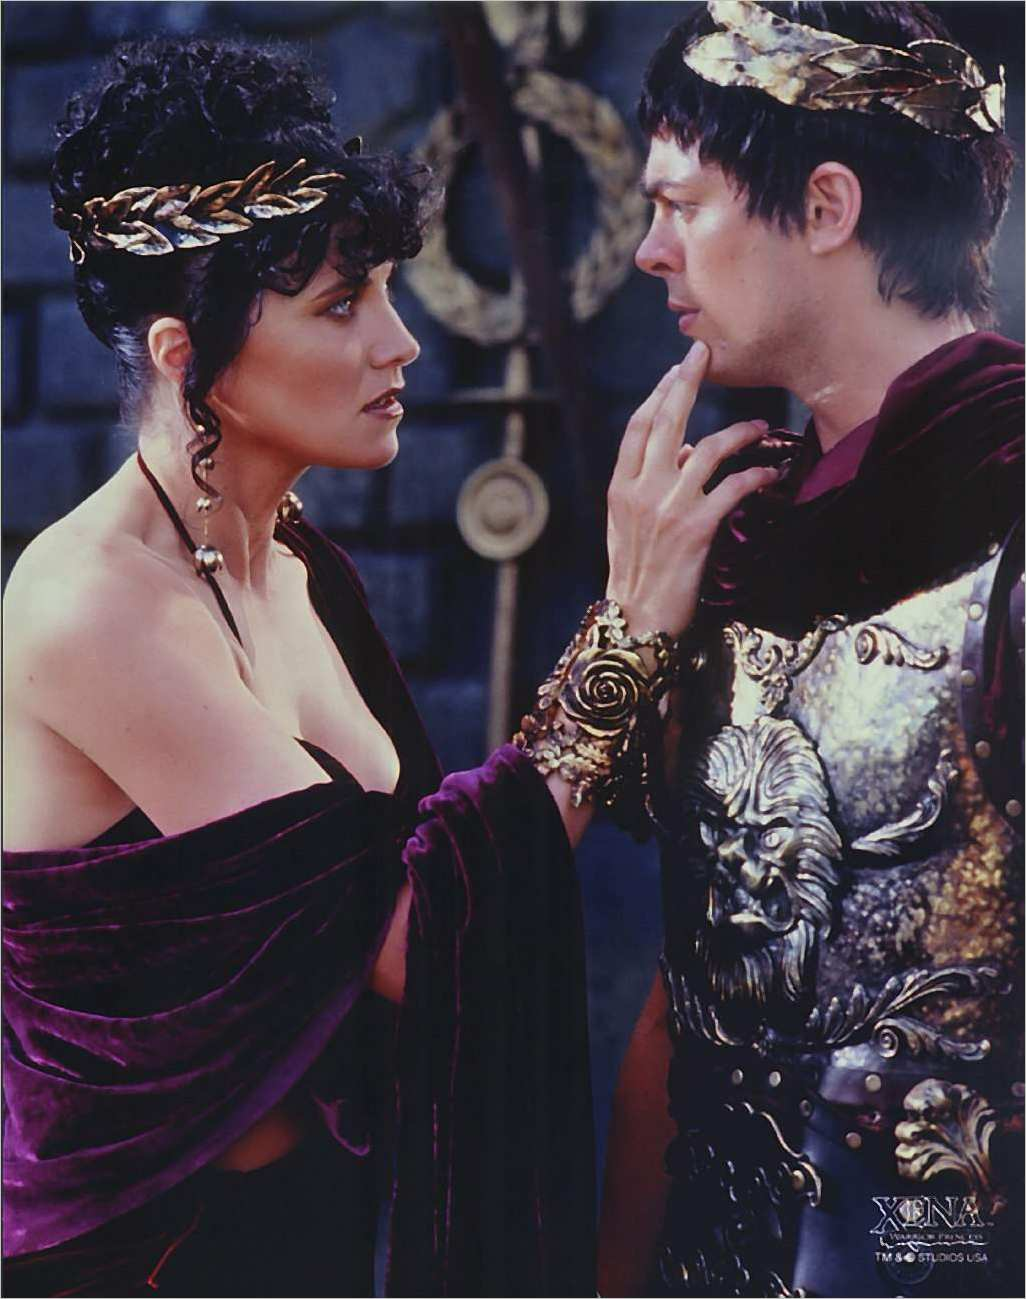 Image result for xena romans